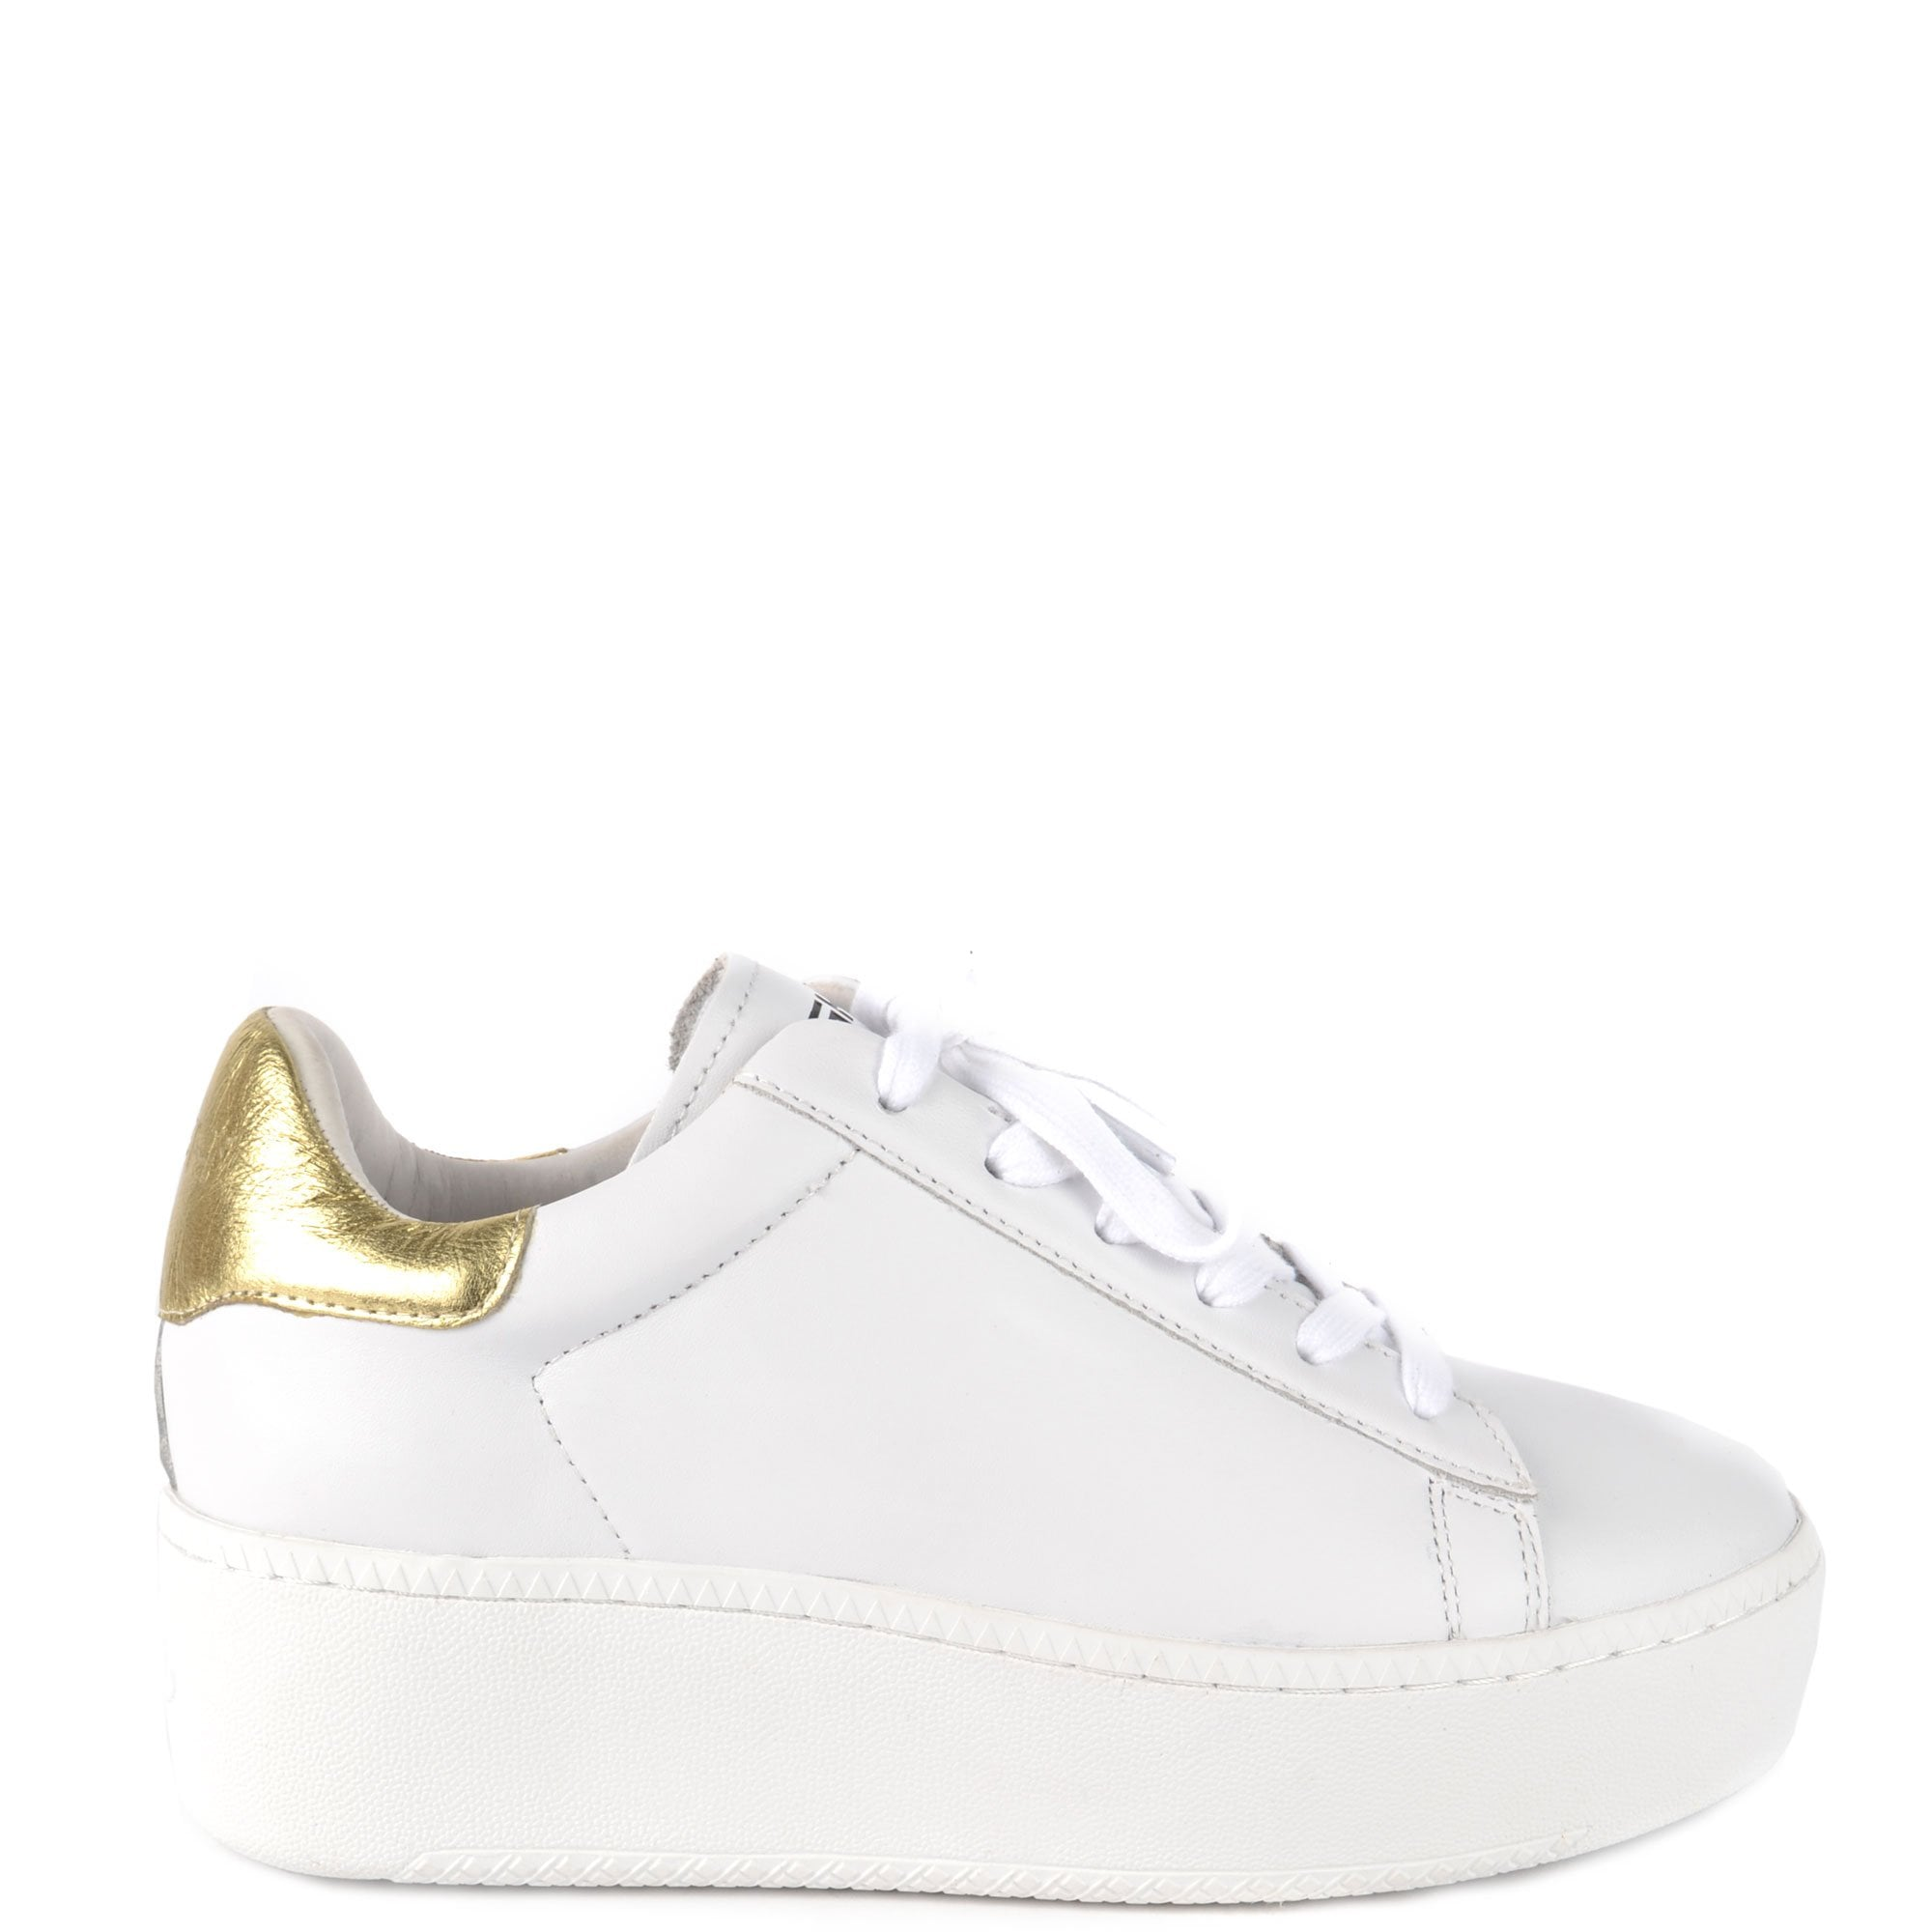 CULT Trainers in White Leather \u0026 Gold